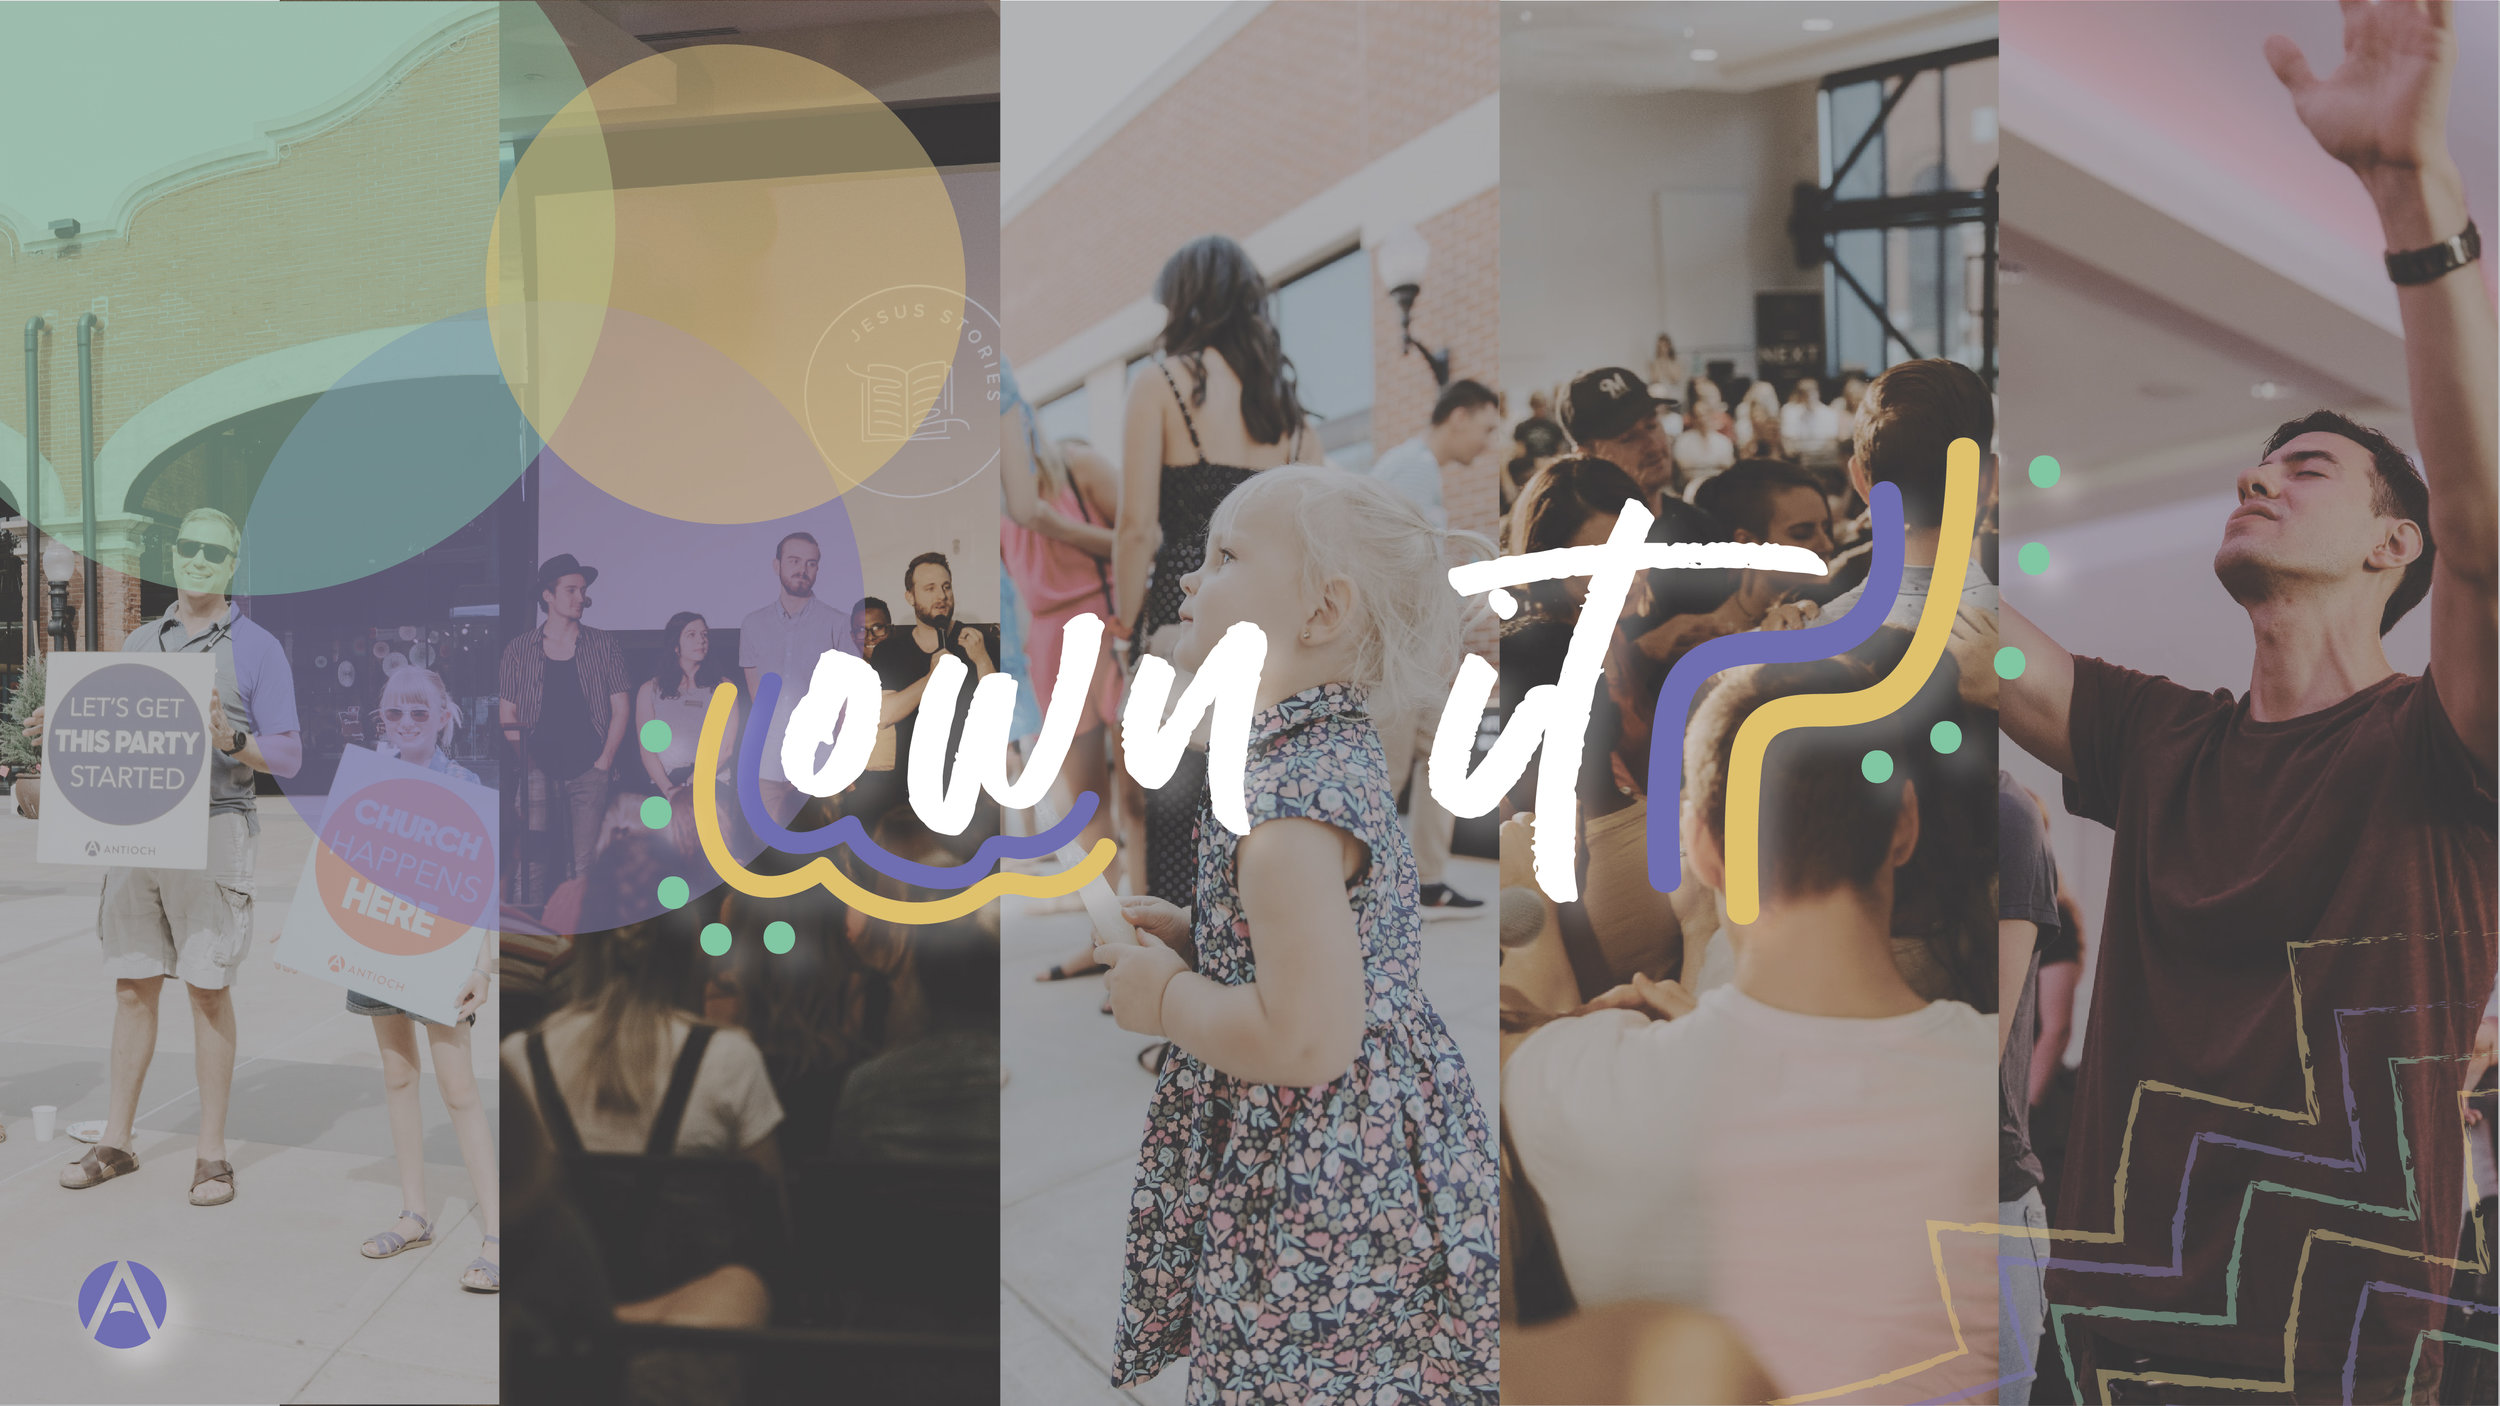 Own It - This series helps us understand how we are to partner with God in owning our life with Christ.